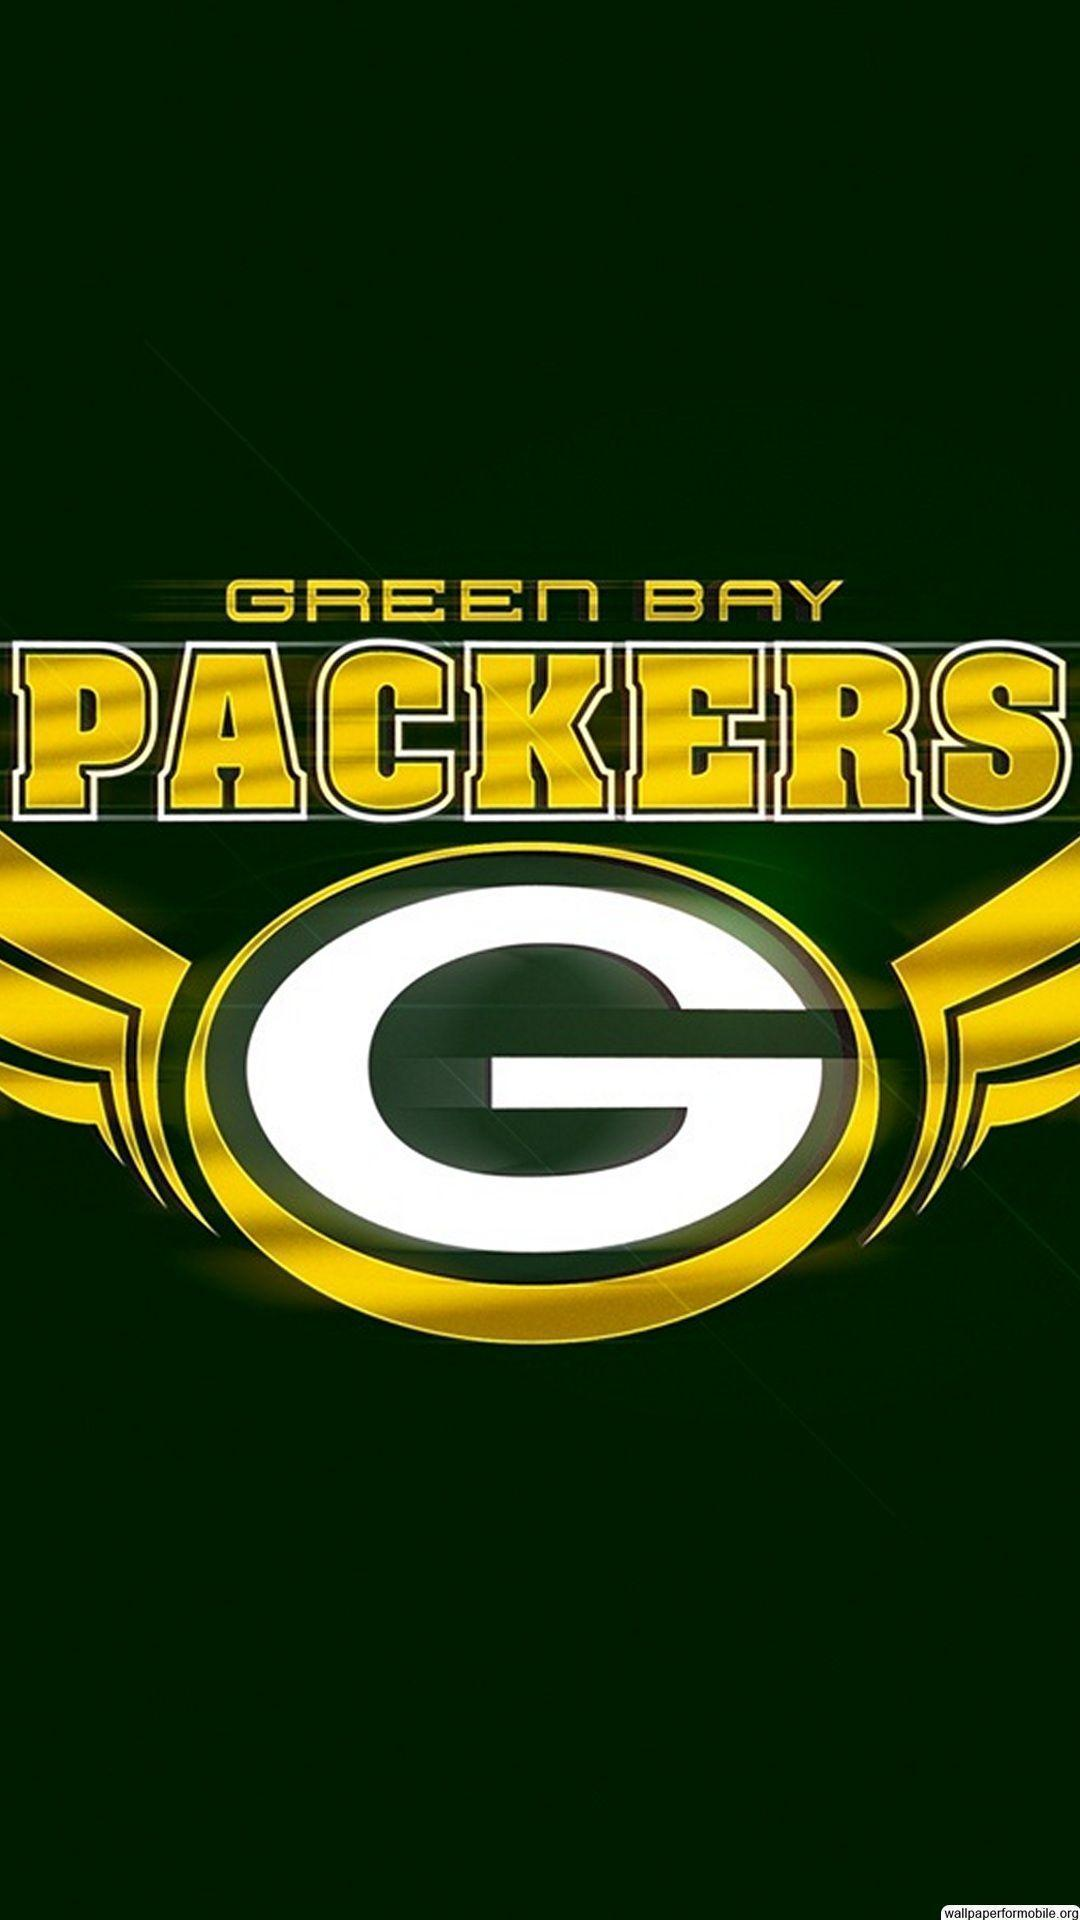 packers iphone wallpaper green bay packers 2017 wallpapers wallpaper cave 12756